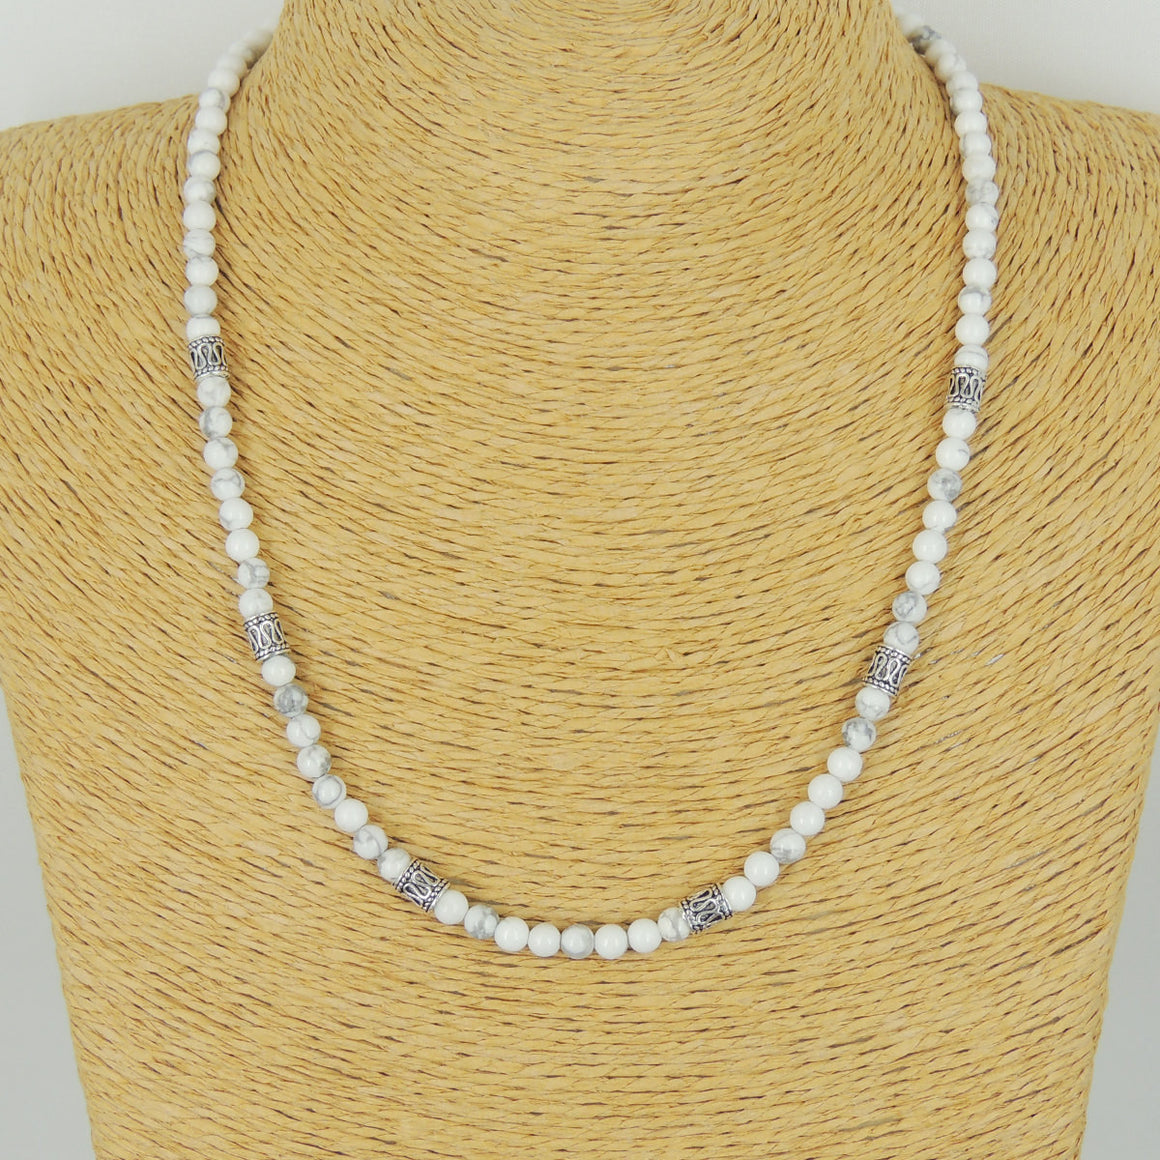 5mm White Howlite Healing Gemstone Necklace with S925 Sterling Silver Barrel Beads & Clasp - Handmade by Gem & Silver NK091